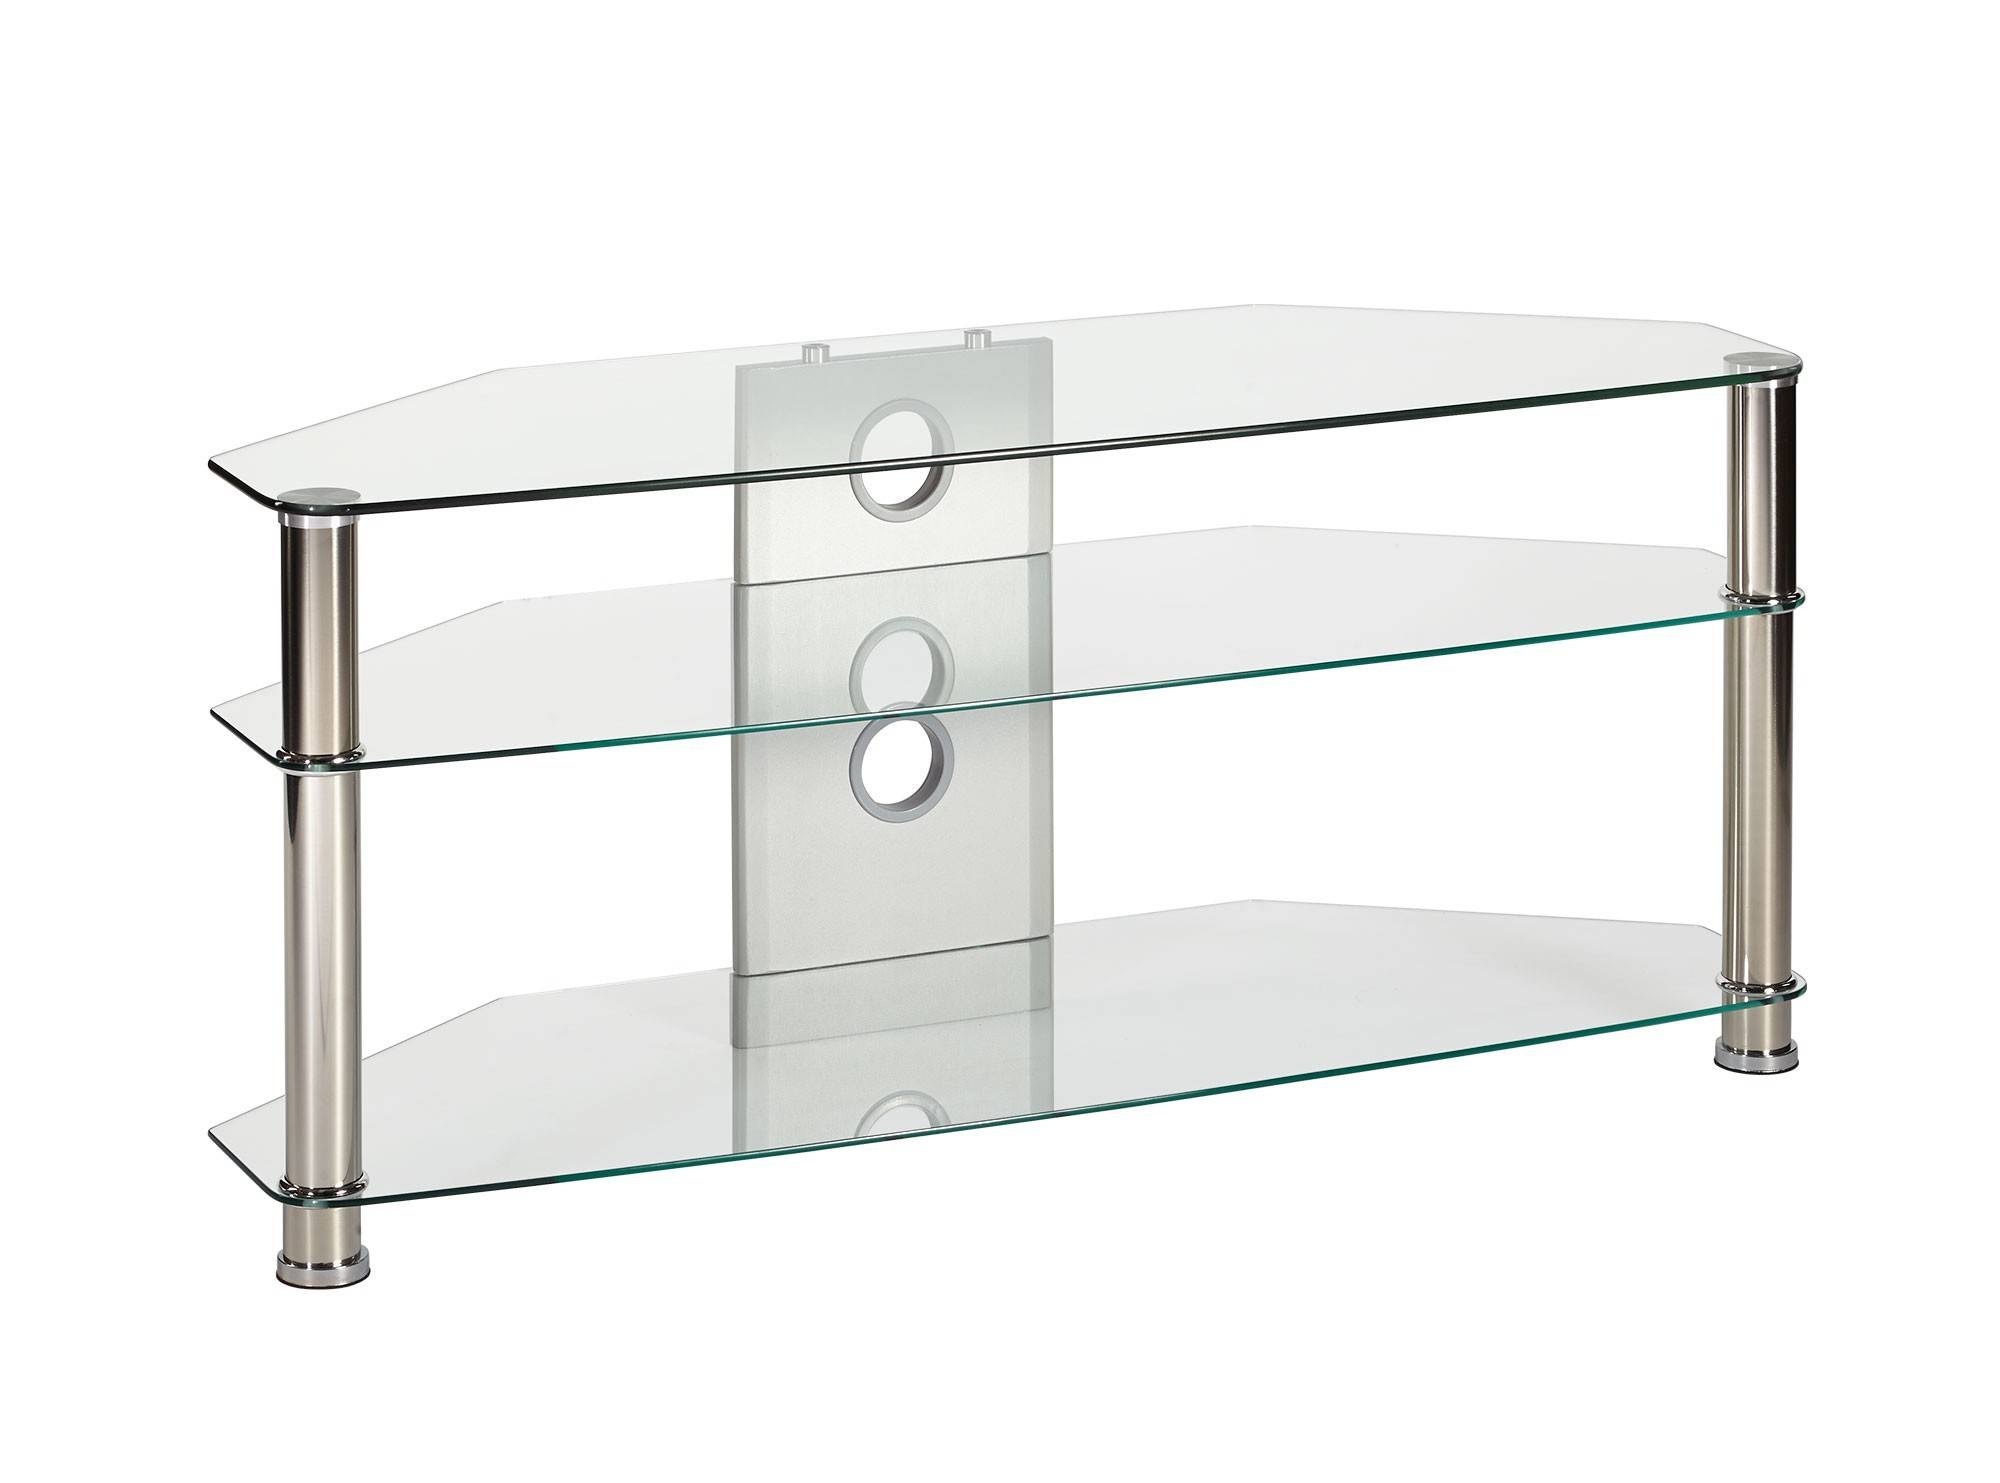 Large Clear Glass Corner Tv Stand Up To 55 Inch Tv | Mmt-Cl1150 intended for Clear Glass Tv Stand (Image 8 of 15)